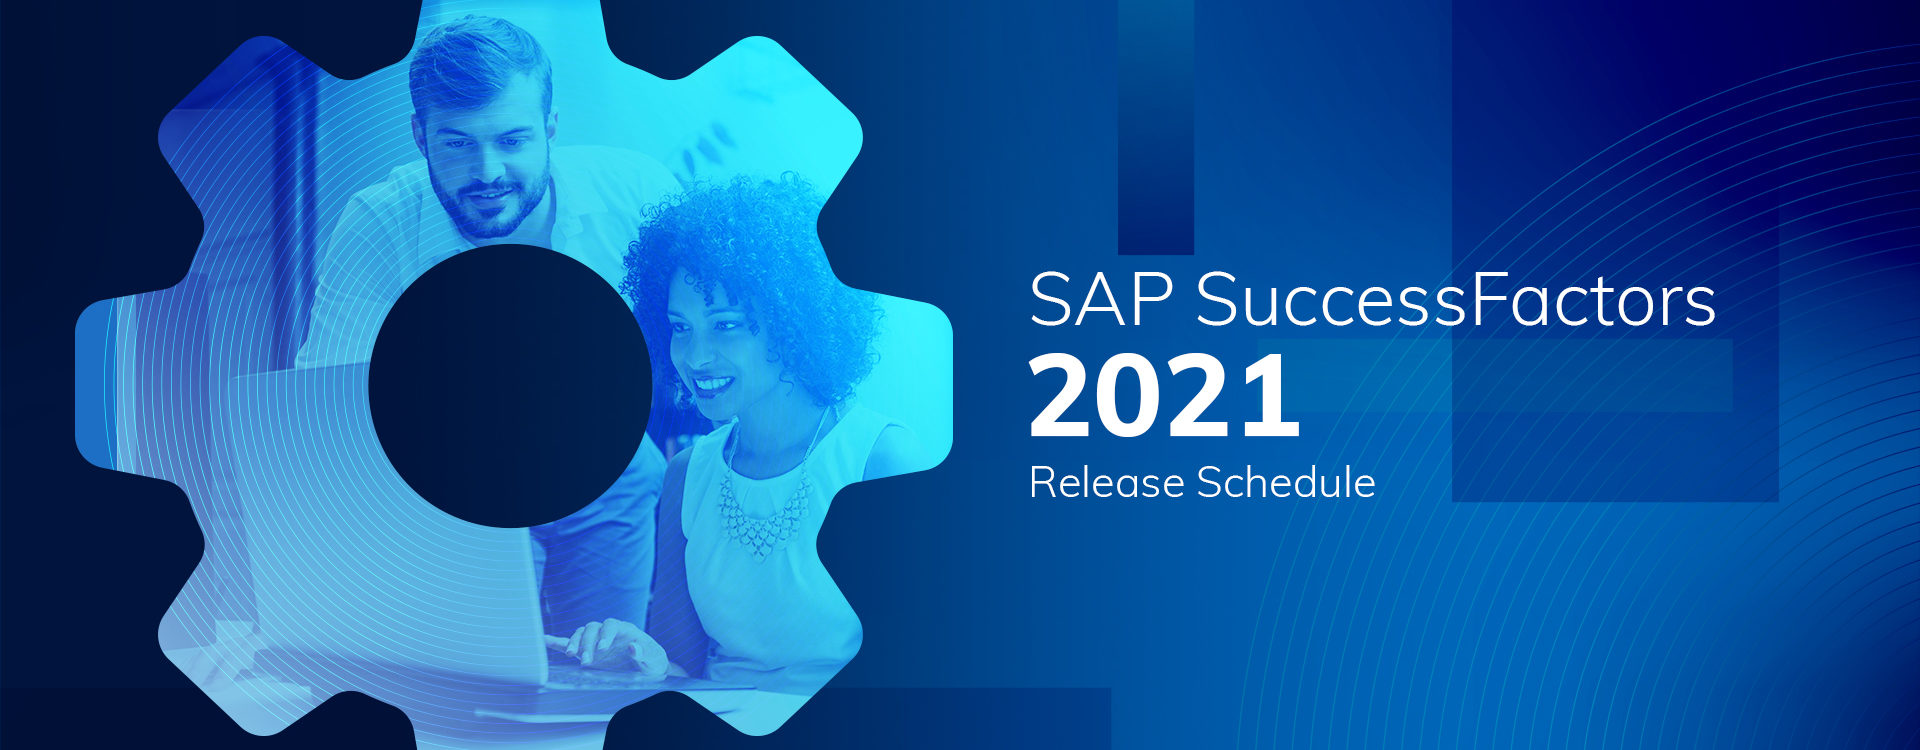 SAP SuccessFactors 2021 Release Schedule featured image